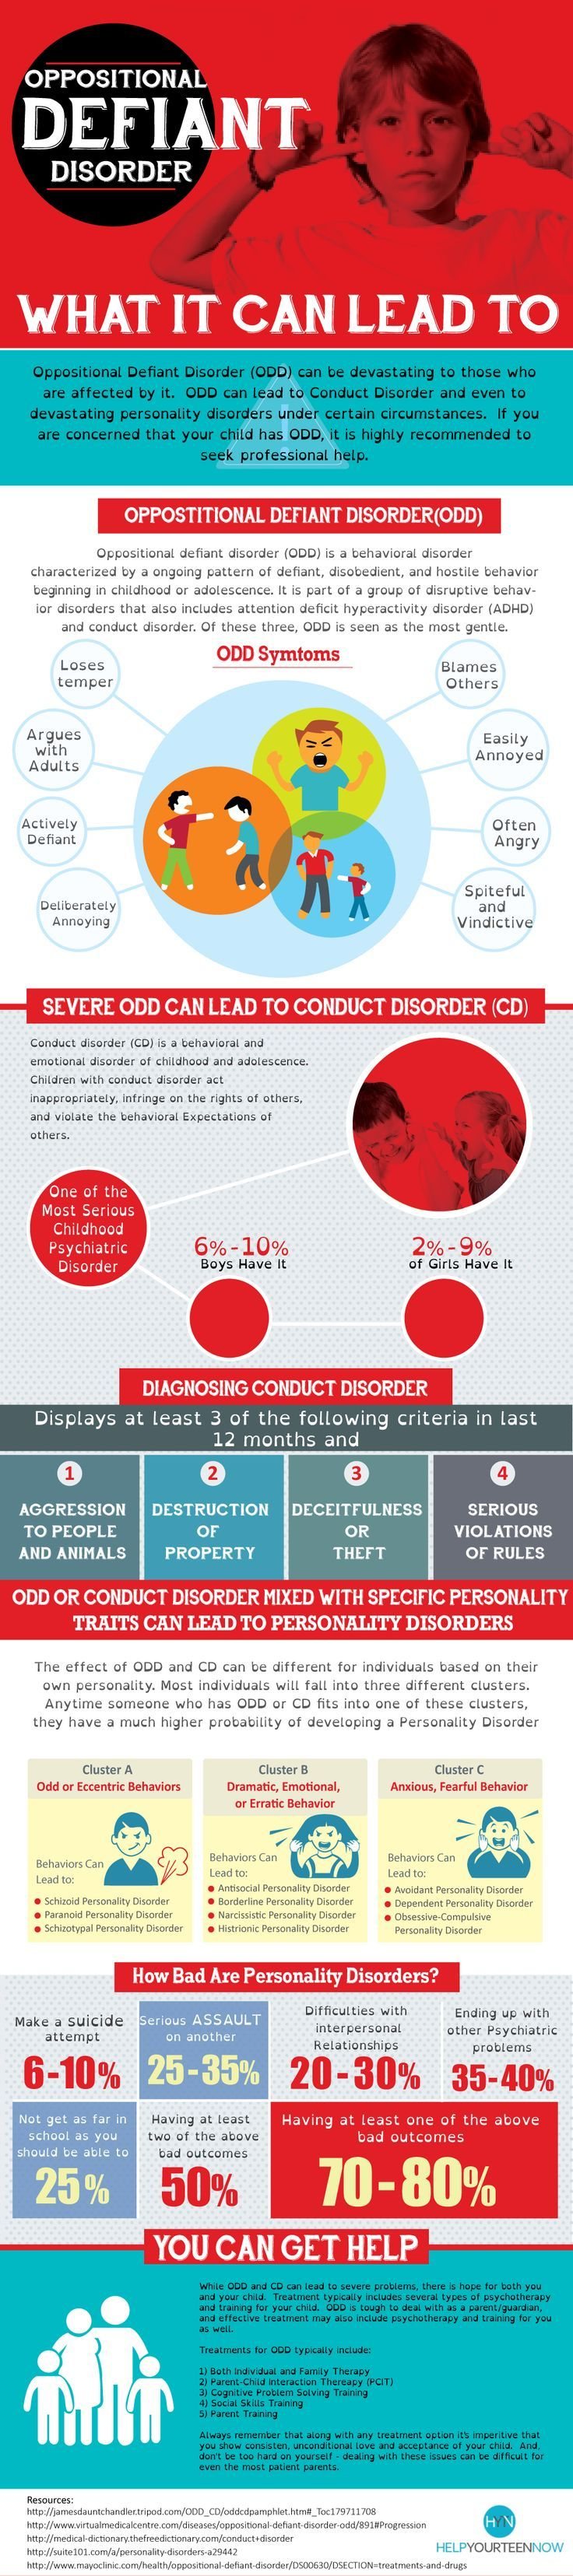 "Opposition Defiant Disorder #Infographic - ""Teens test boundaries, make mistakes and sometimes have little respect for their parents. Teens with ODD experience these normal teenage behaviors but may have a harder time living with them. Sometimes ODD can lead to a more severe disorder known as Conduct Disorder. Left untreated and combined with other personality disorders, oppositional defiant disorder may lead to a lifetime of behavioral complications and personality disorders."""